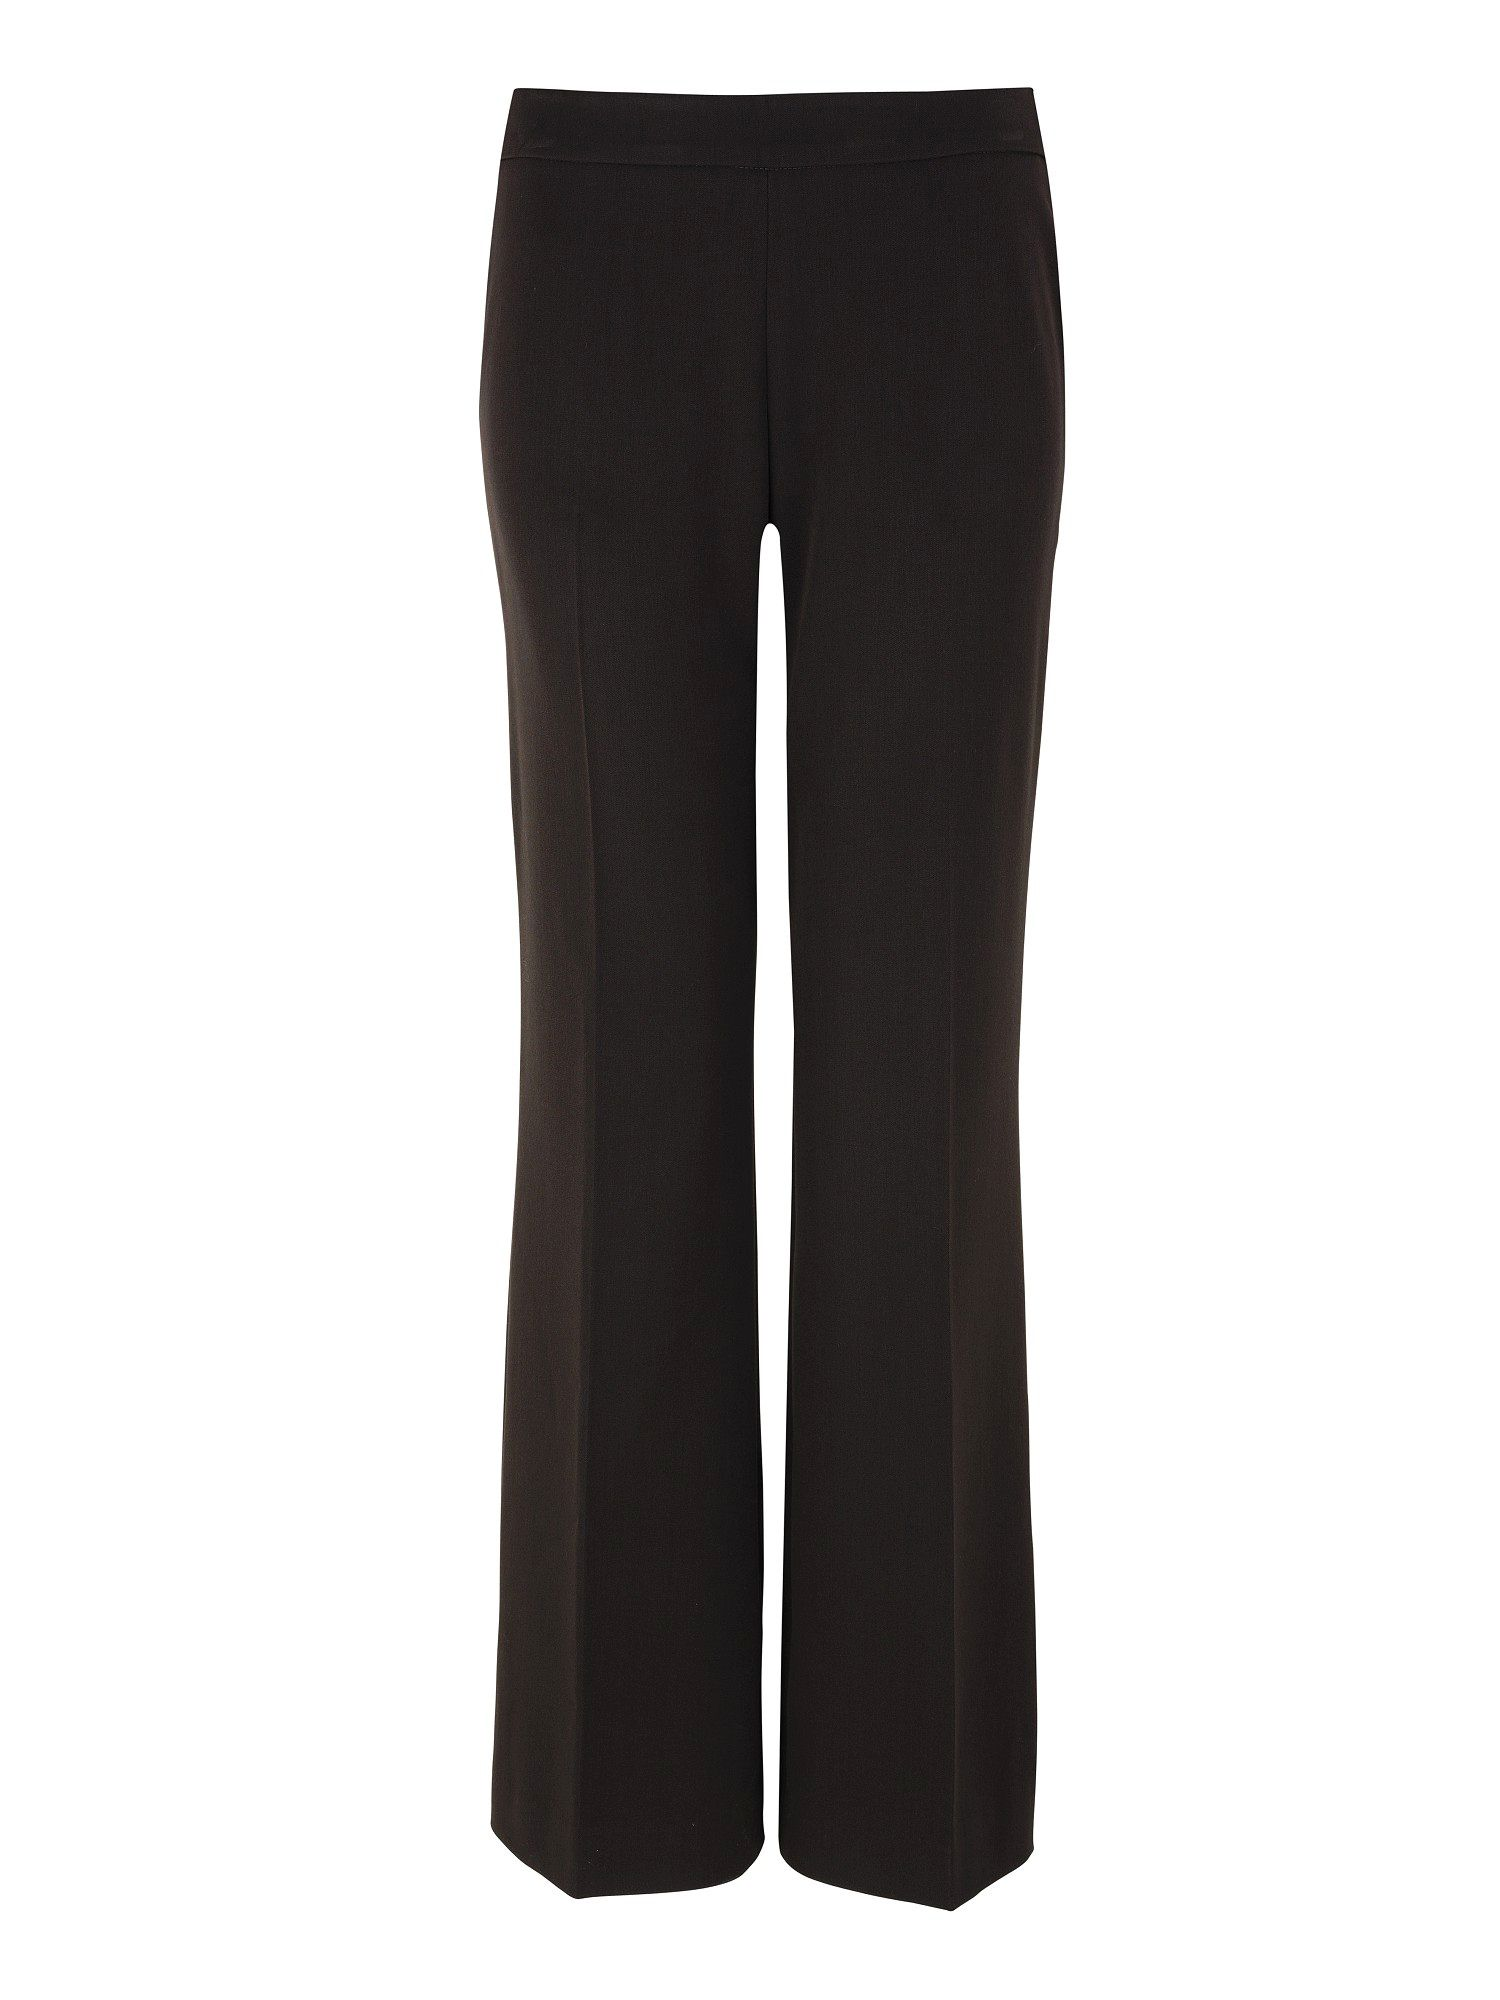 Chocolate loose flare leg trousers